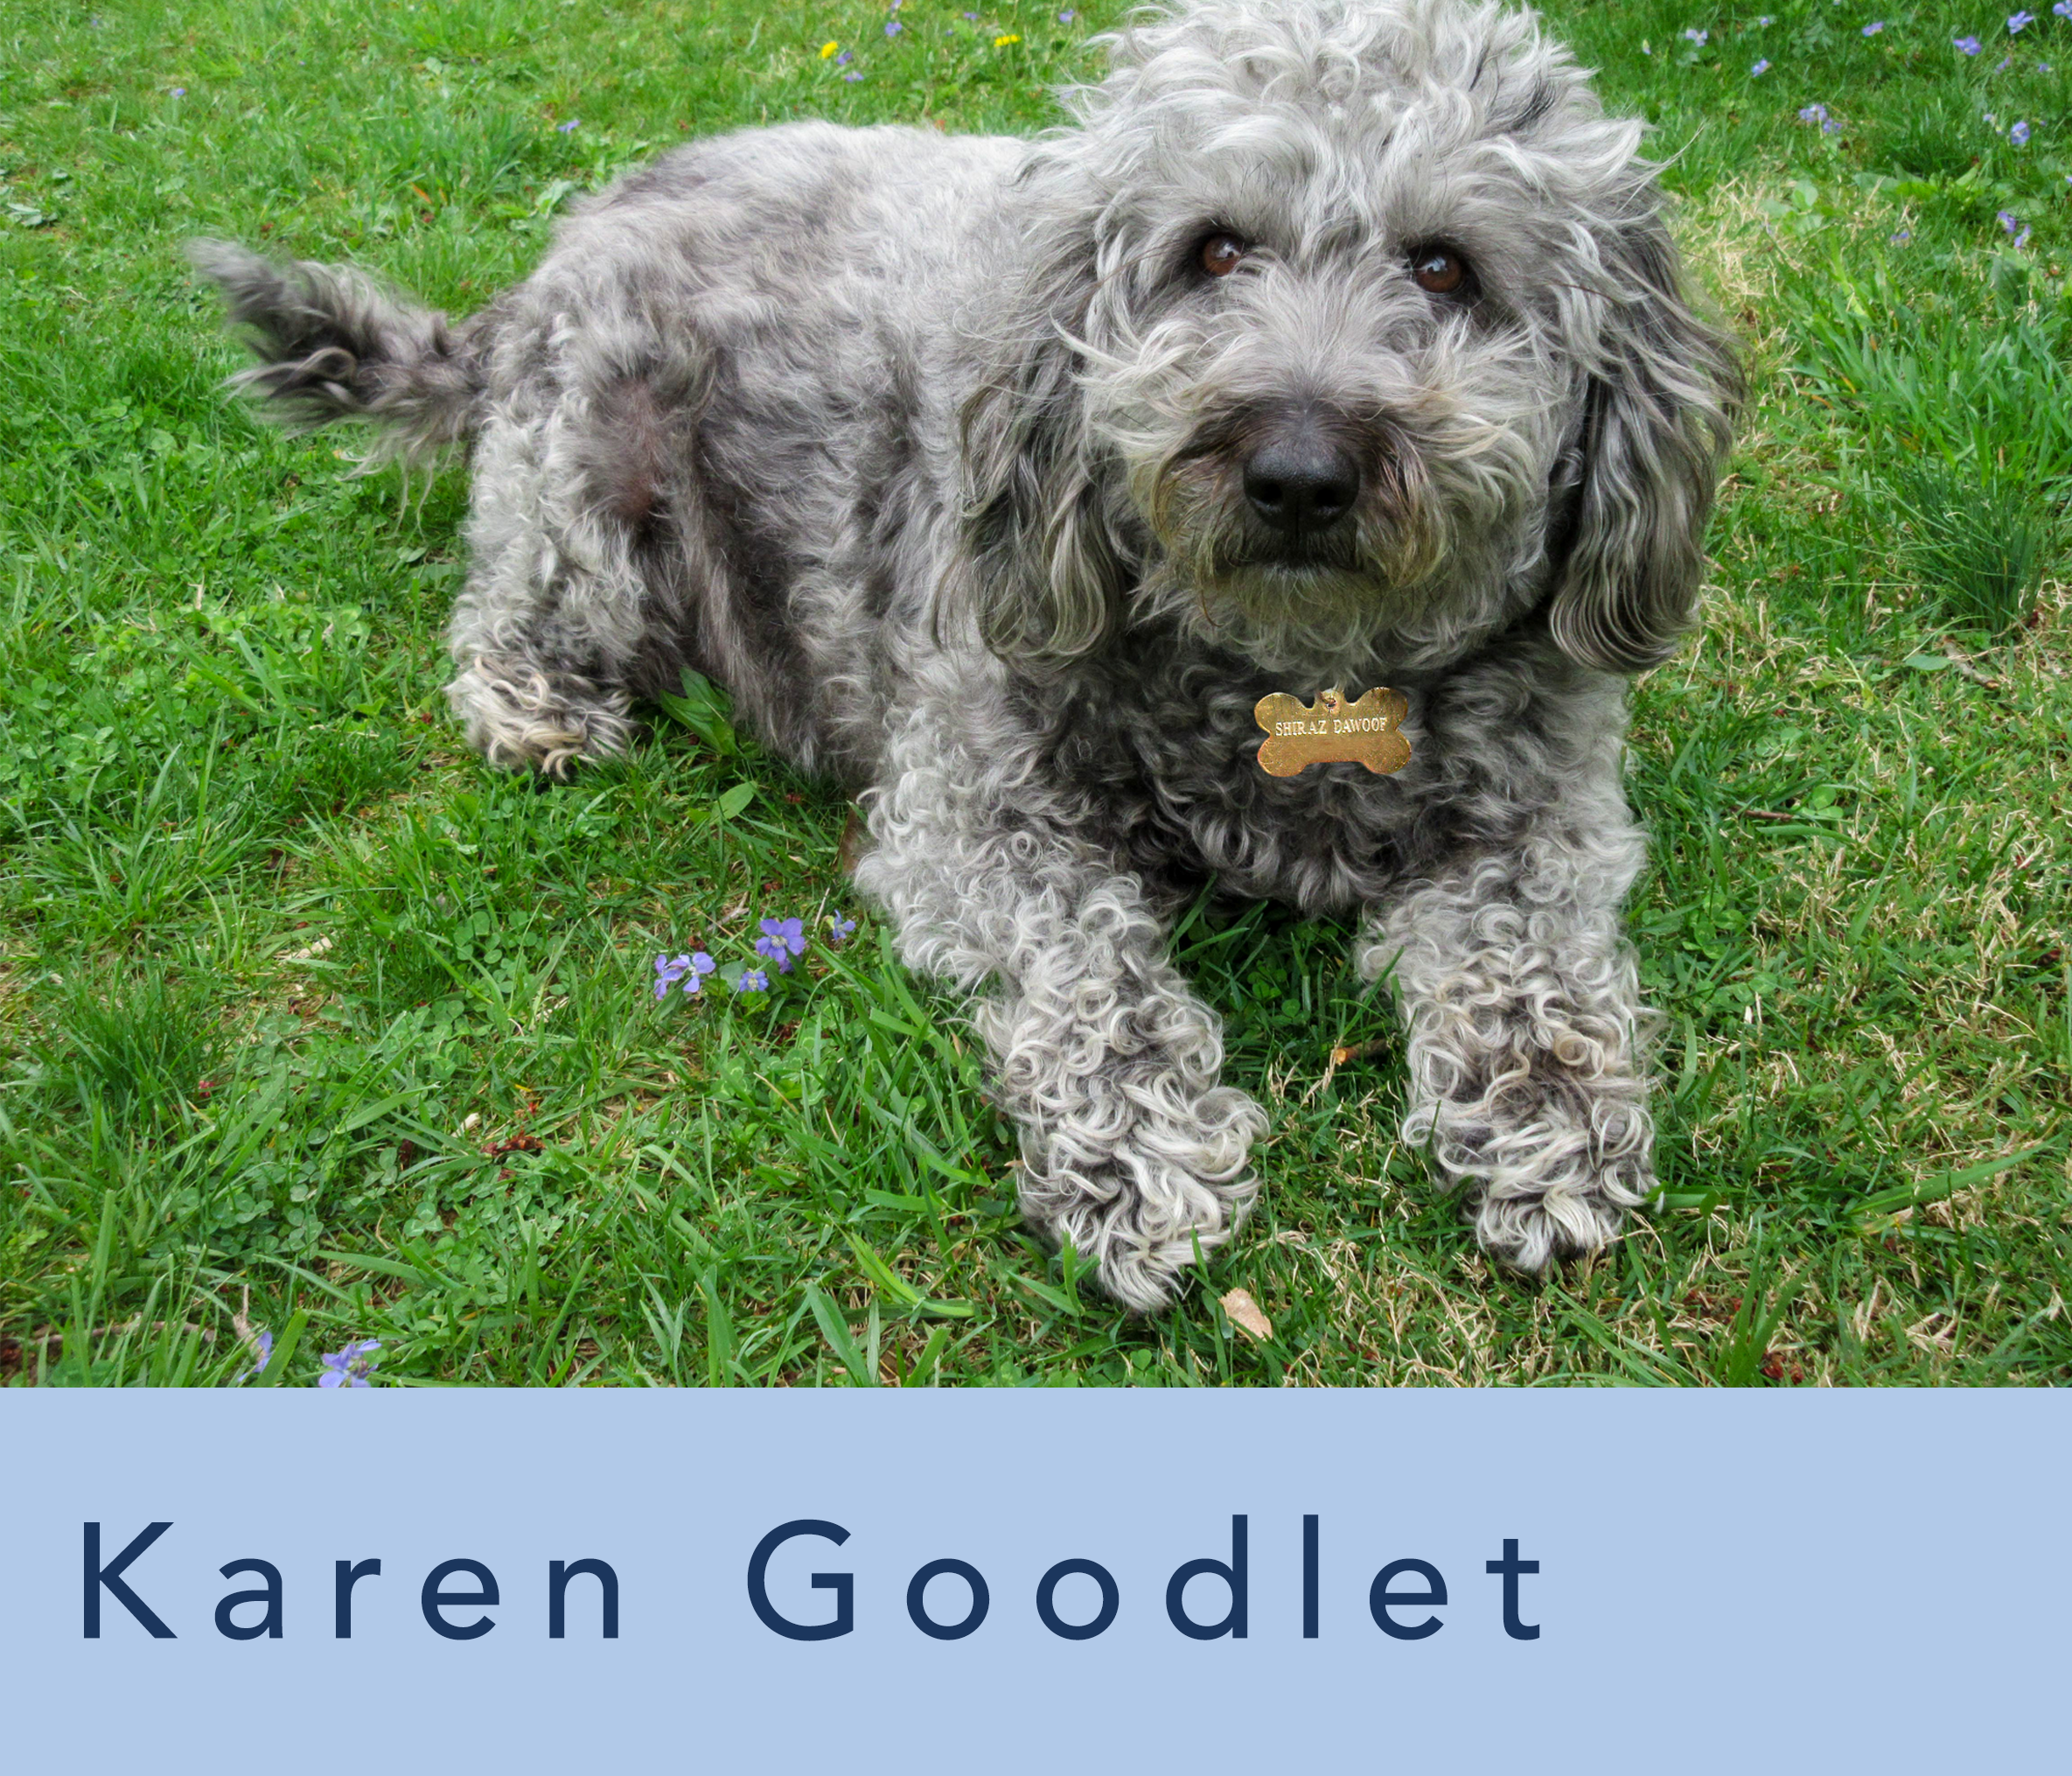 small dog outside representing Karen Goodlet